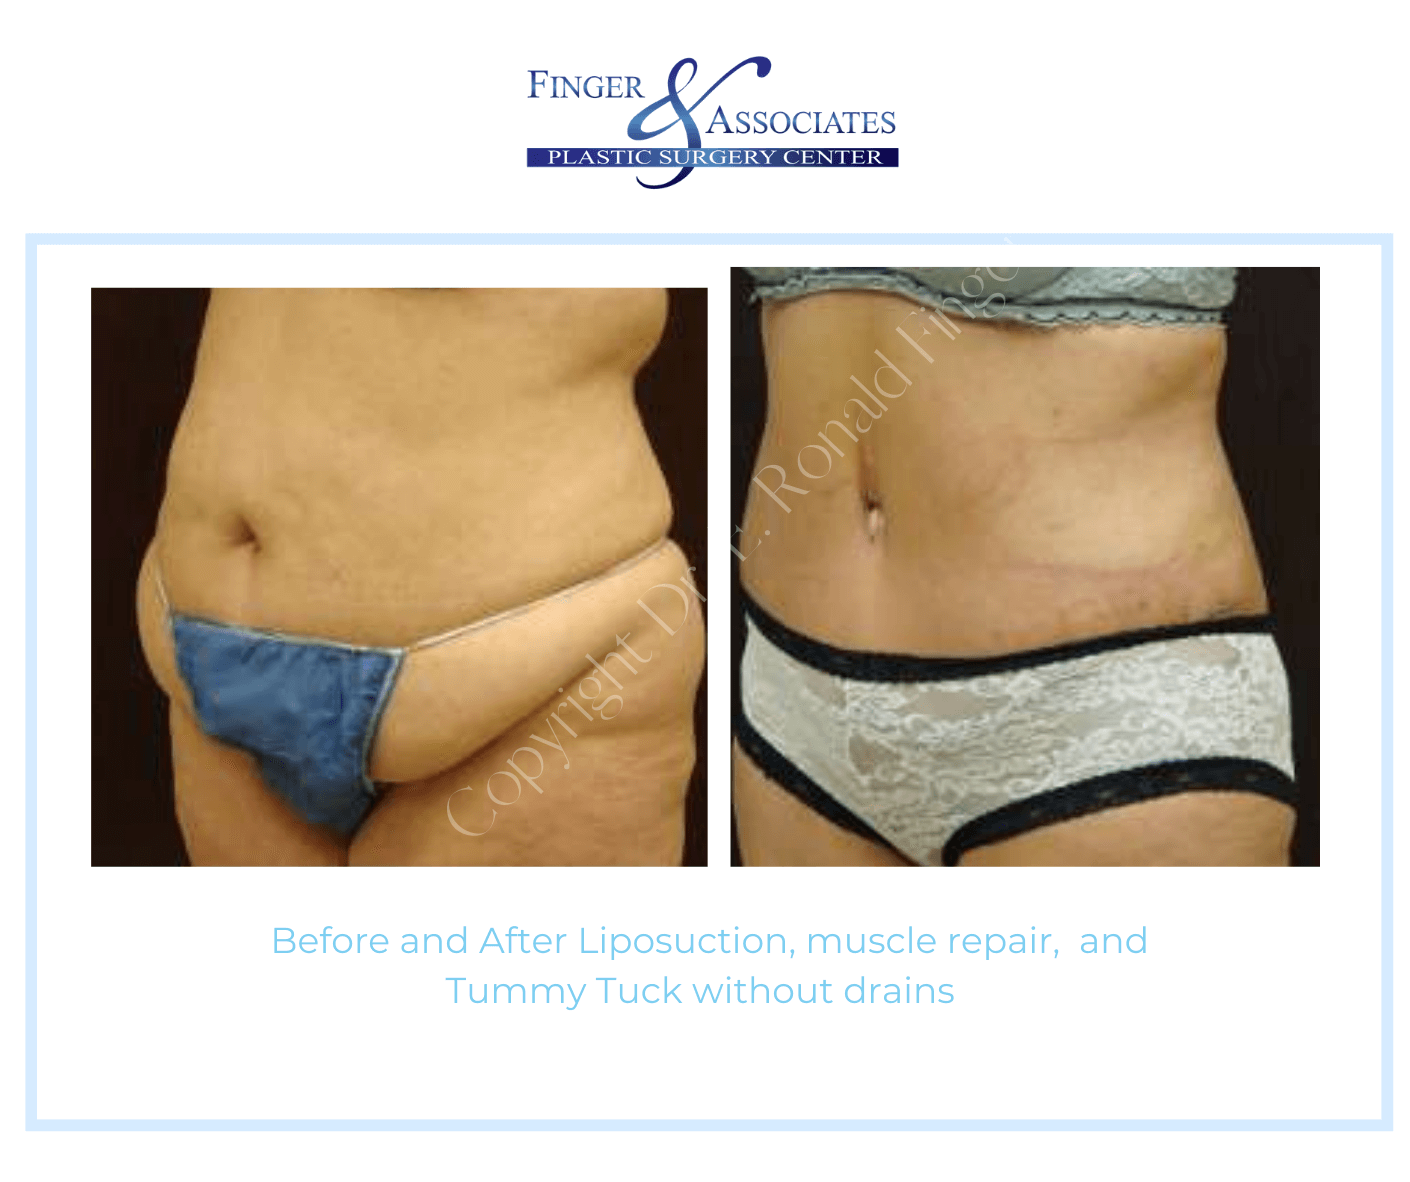 Before and after Tummy tuck without drains and liposuction